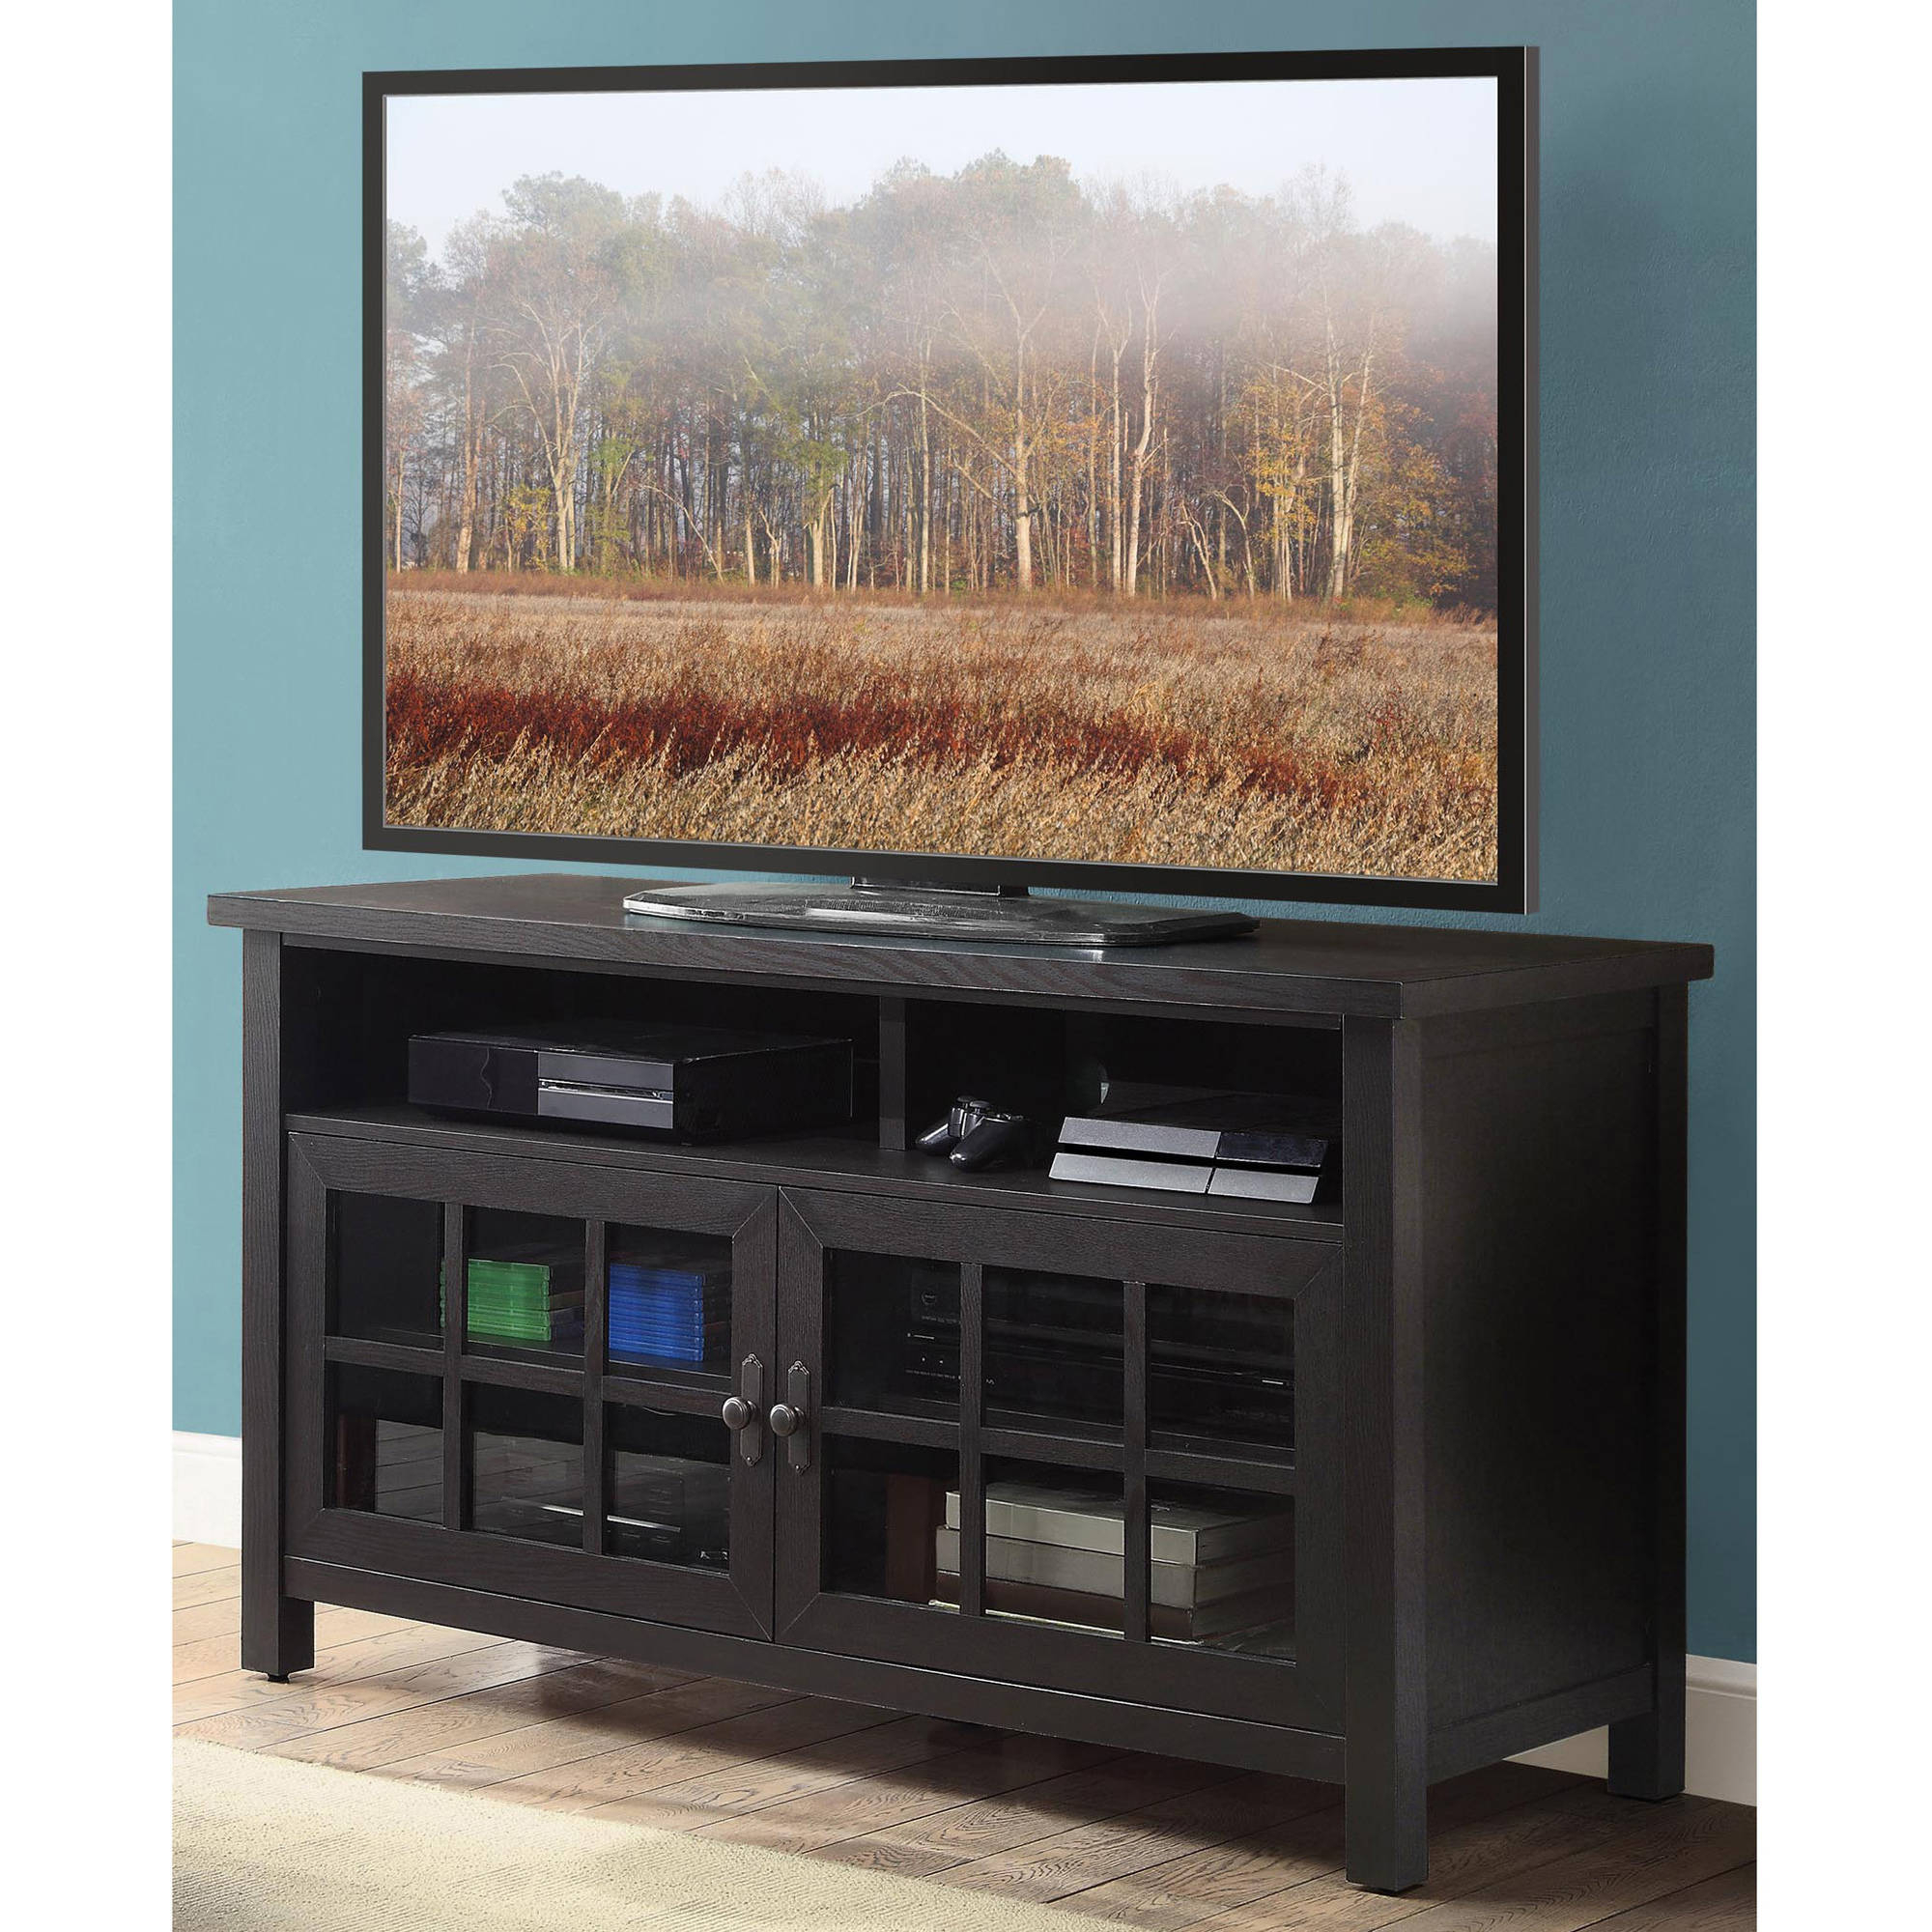 Better Homes And Gardens Oxford Square Av Console For Tv's Up To 60 Pertaining To Oxford 60 Inch Tv Stands (View 6 of 20)